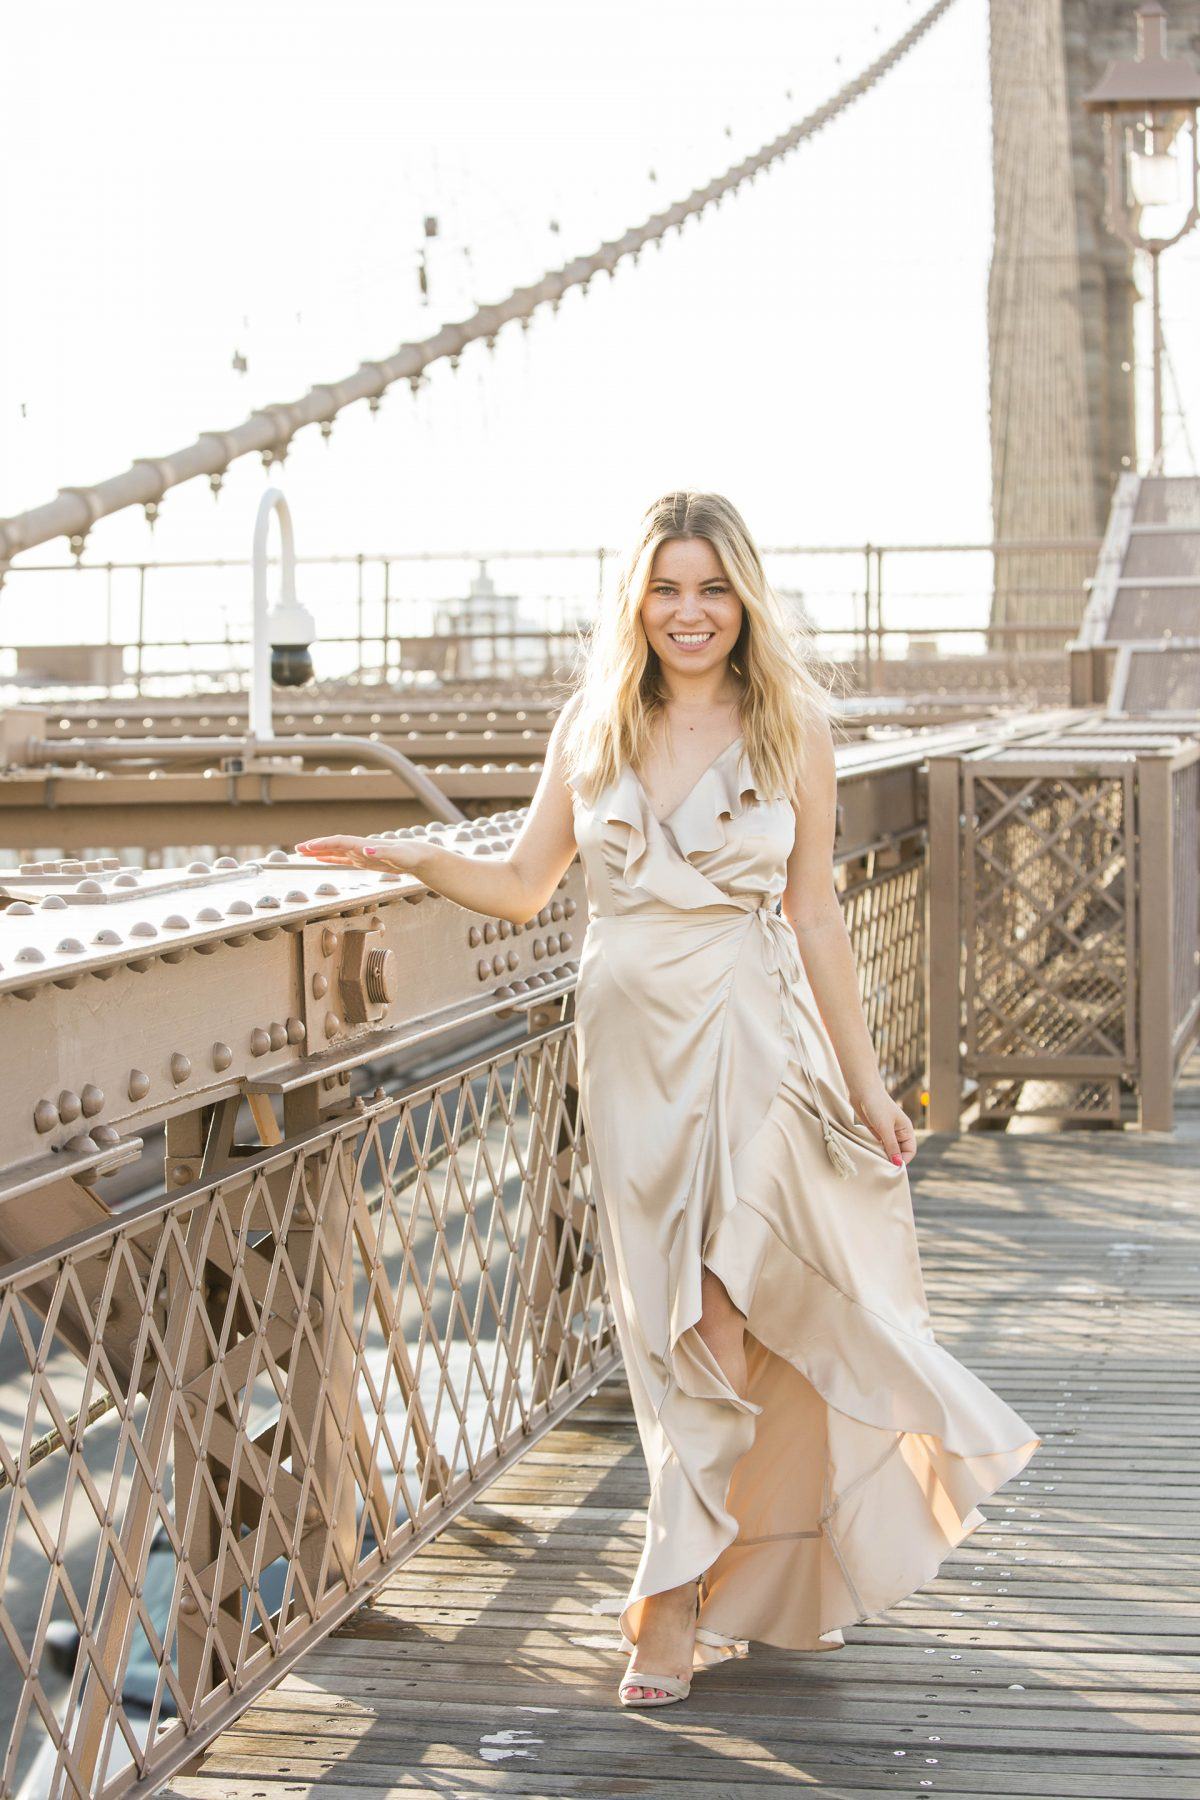 Honest Thoughts on Blogging - NYC photoshoot